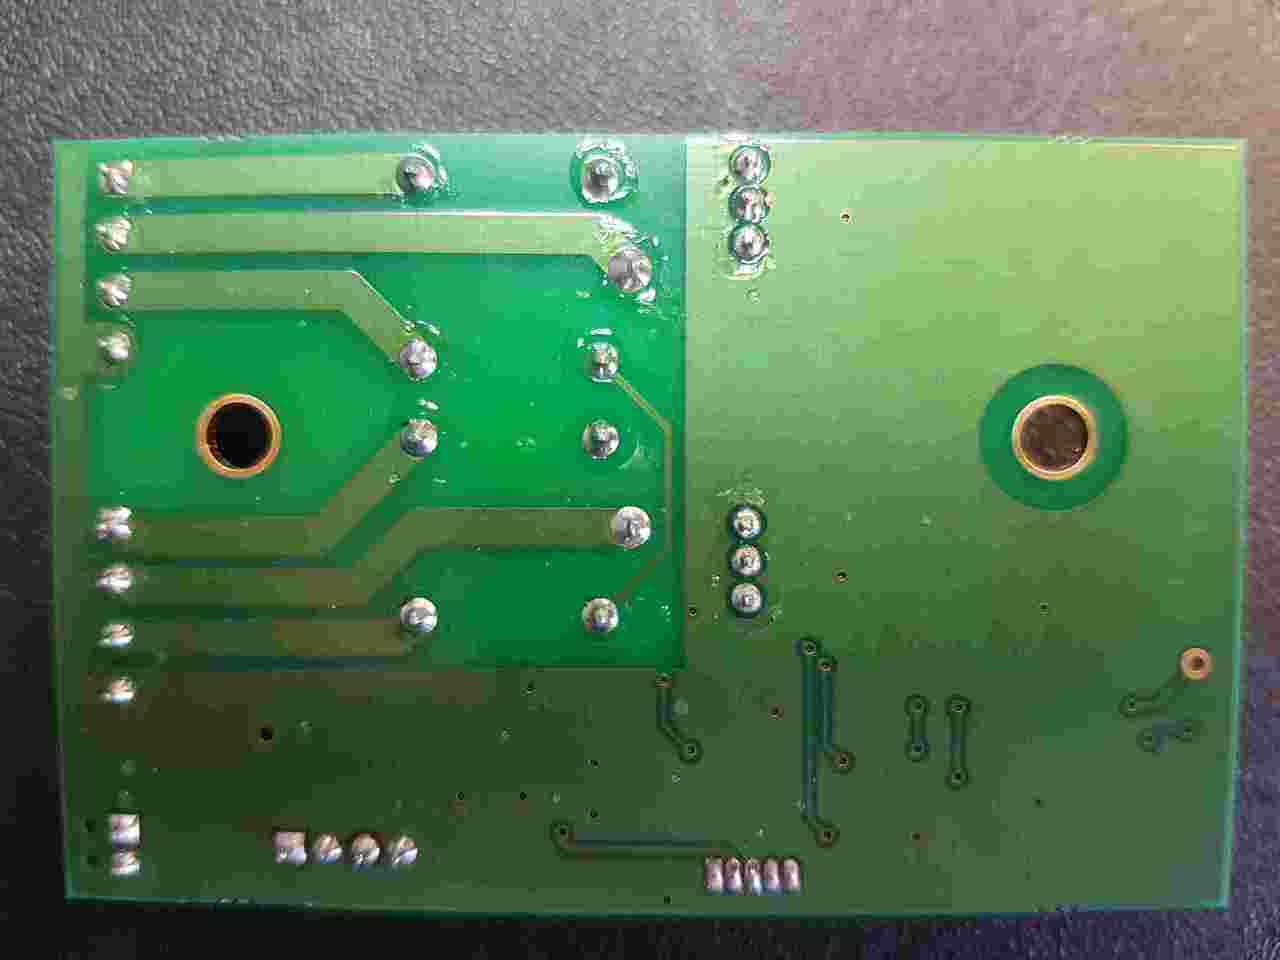 The Contact Delay PCB ignores each alarm signal until the pre-set delay time has elapsed.  The appropriate alarm output is then activated and is only de-activated when the alarm condition ends. The delay times are individually set for each alarm signal using two rotary, hexadecimal switches (S1/S2), with switch positions configured and marked on the PCB in the following increments: •0s, 5s, 10s, 15s, 20s, 30s, 40s, 50s, 60s, 1½mins, 2mins, 2½mins, 3mins, 4mins, 5mins, 6mins.